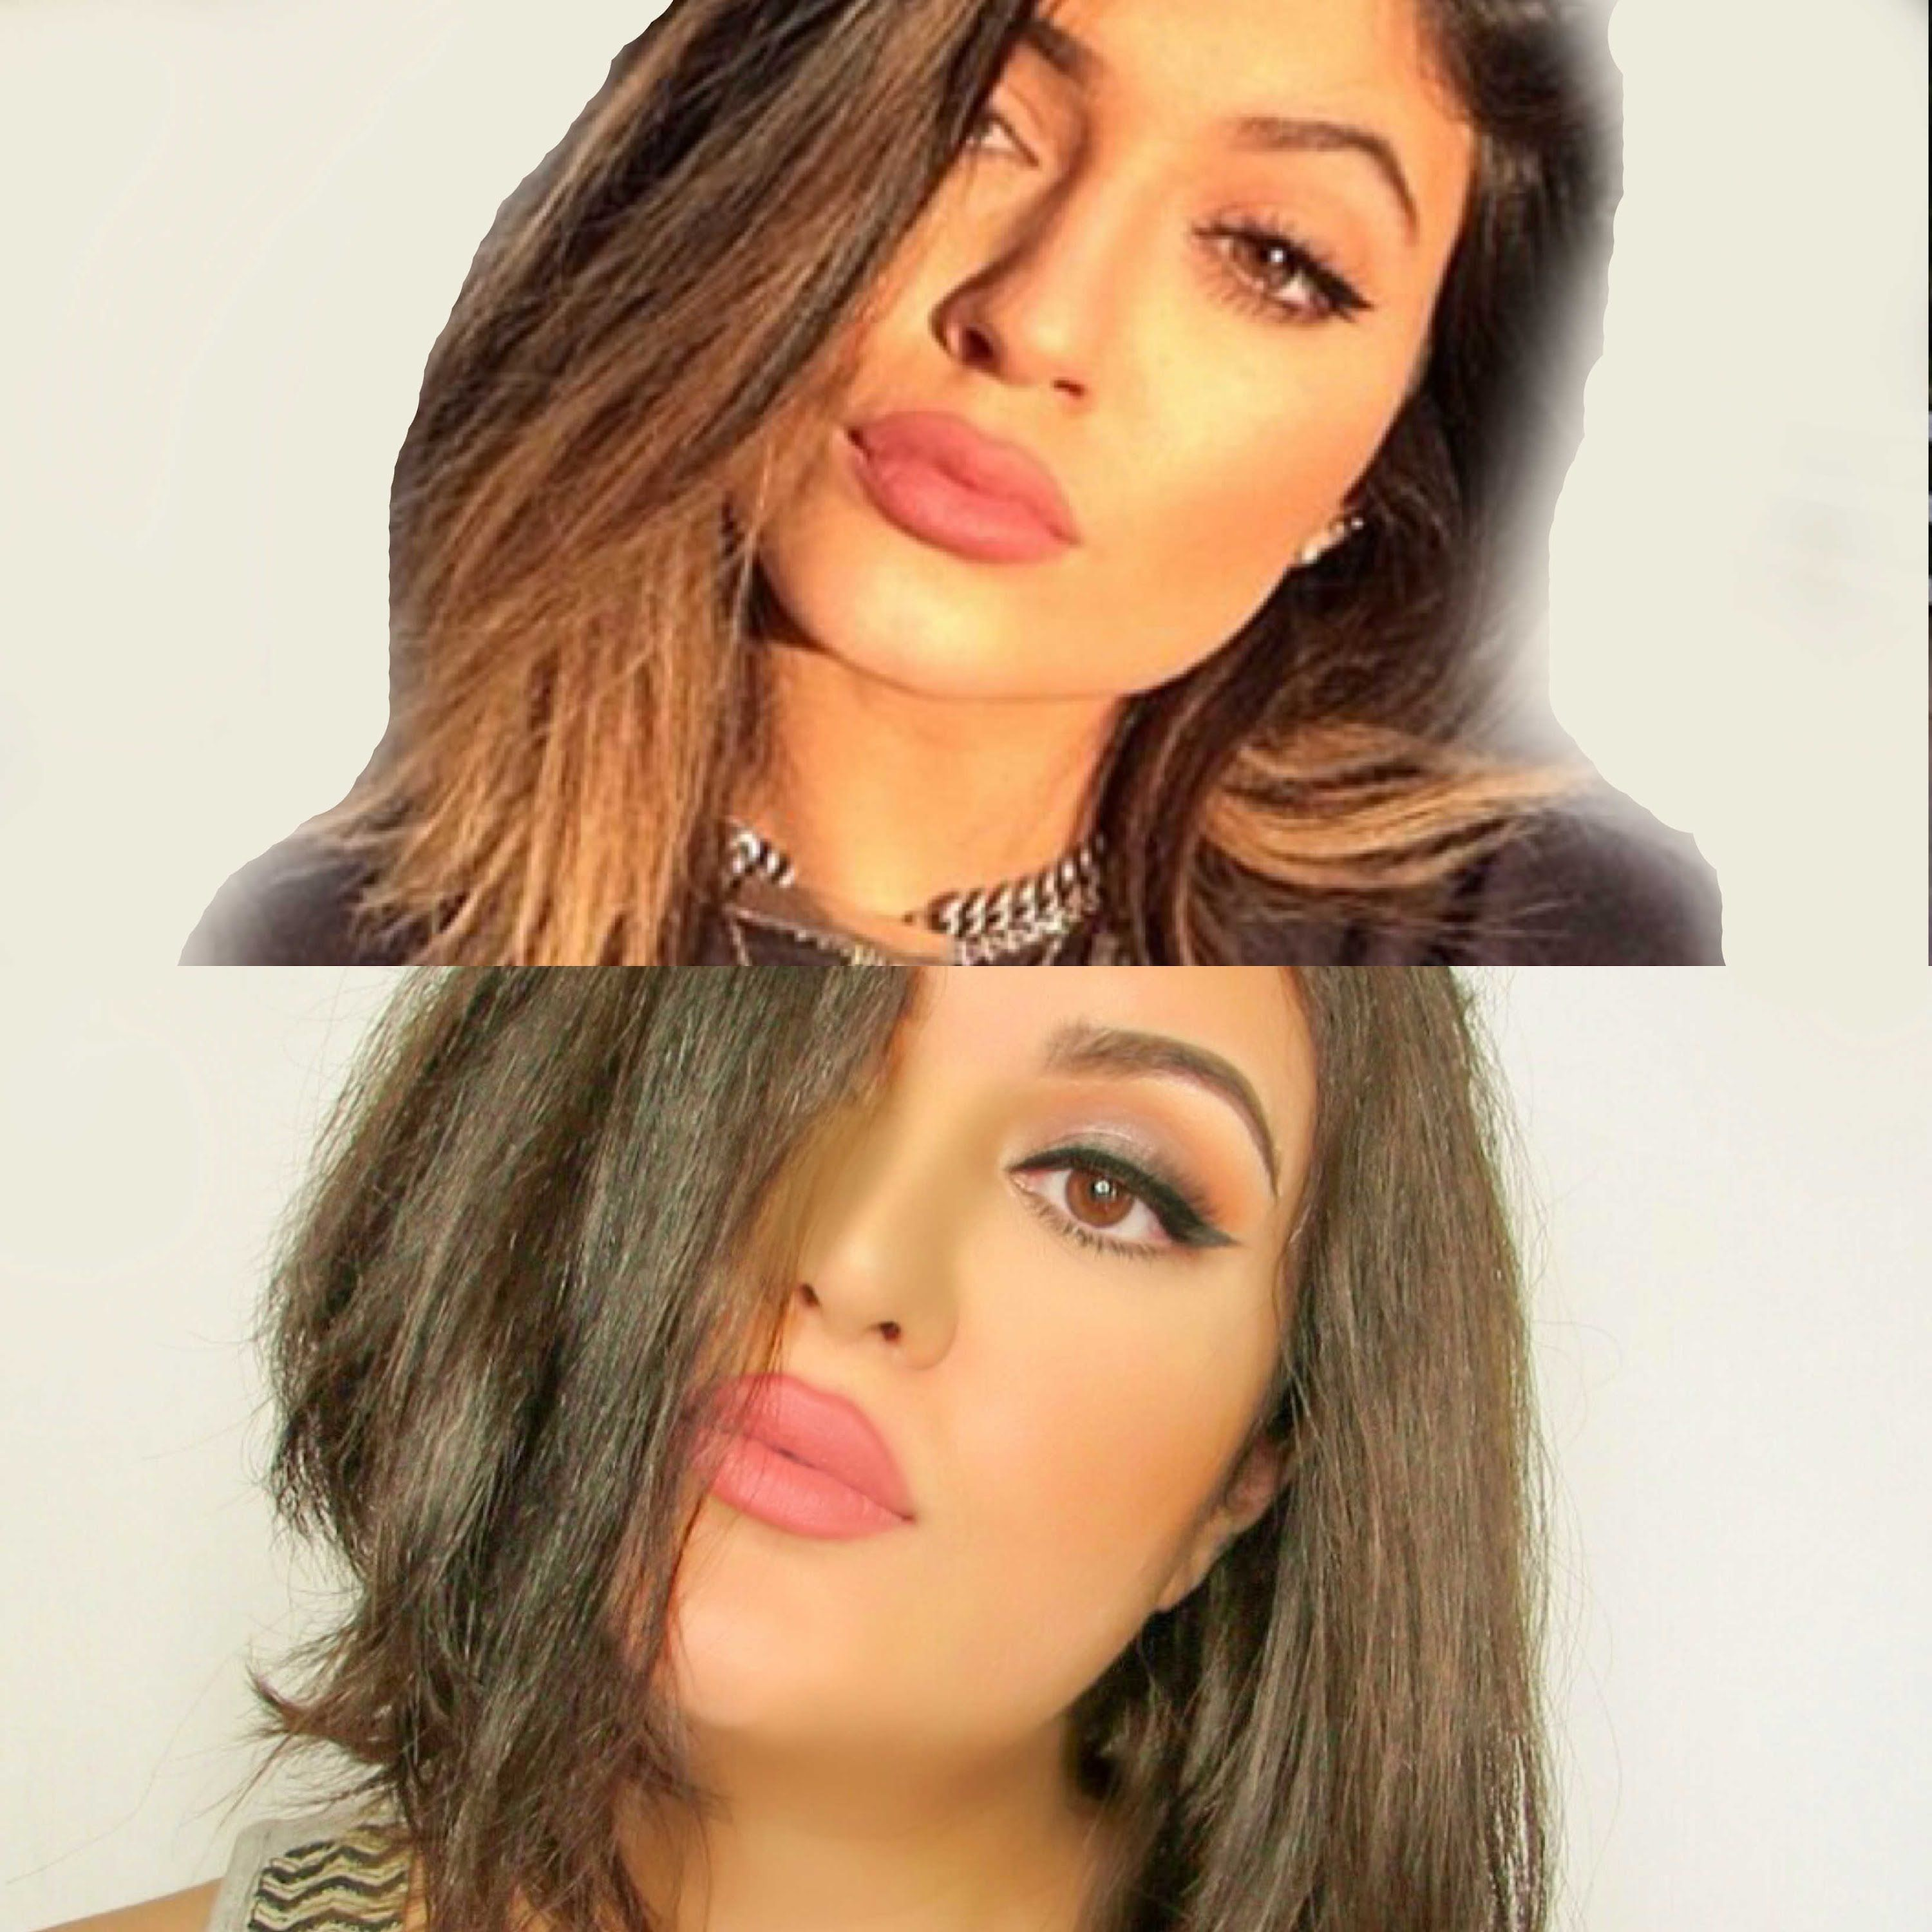 Kylie Jenner Inspired Makeup look (With images) | Kylie ...